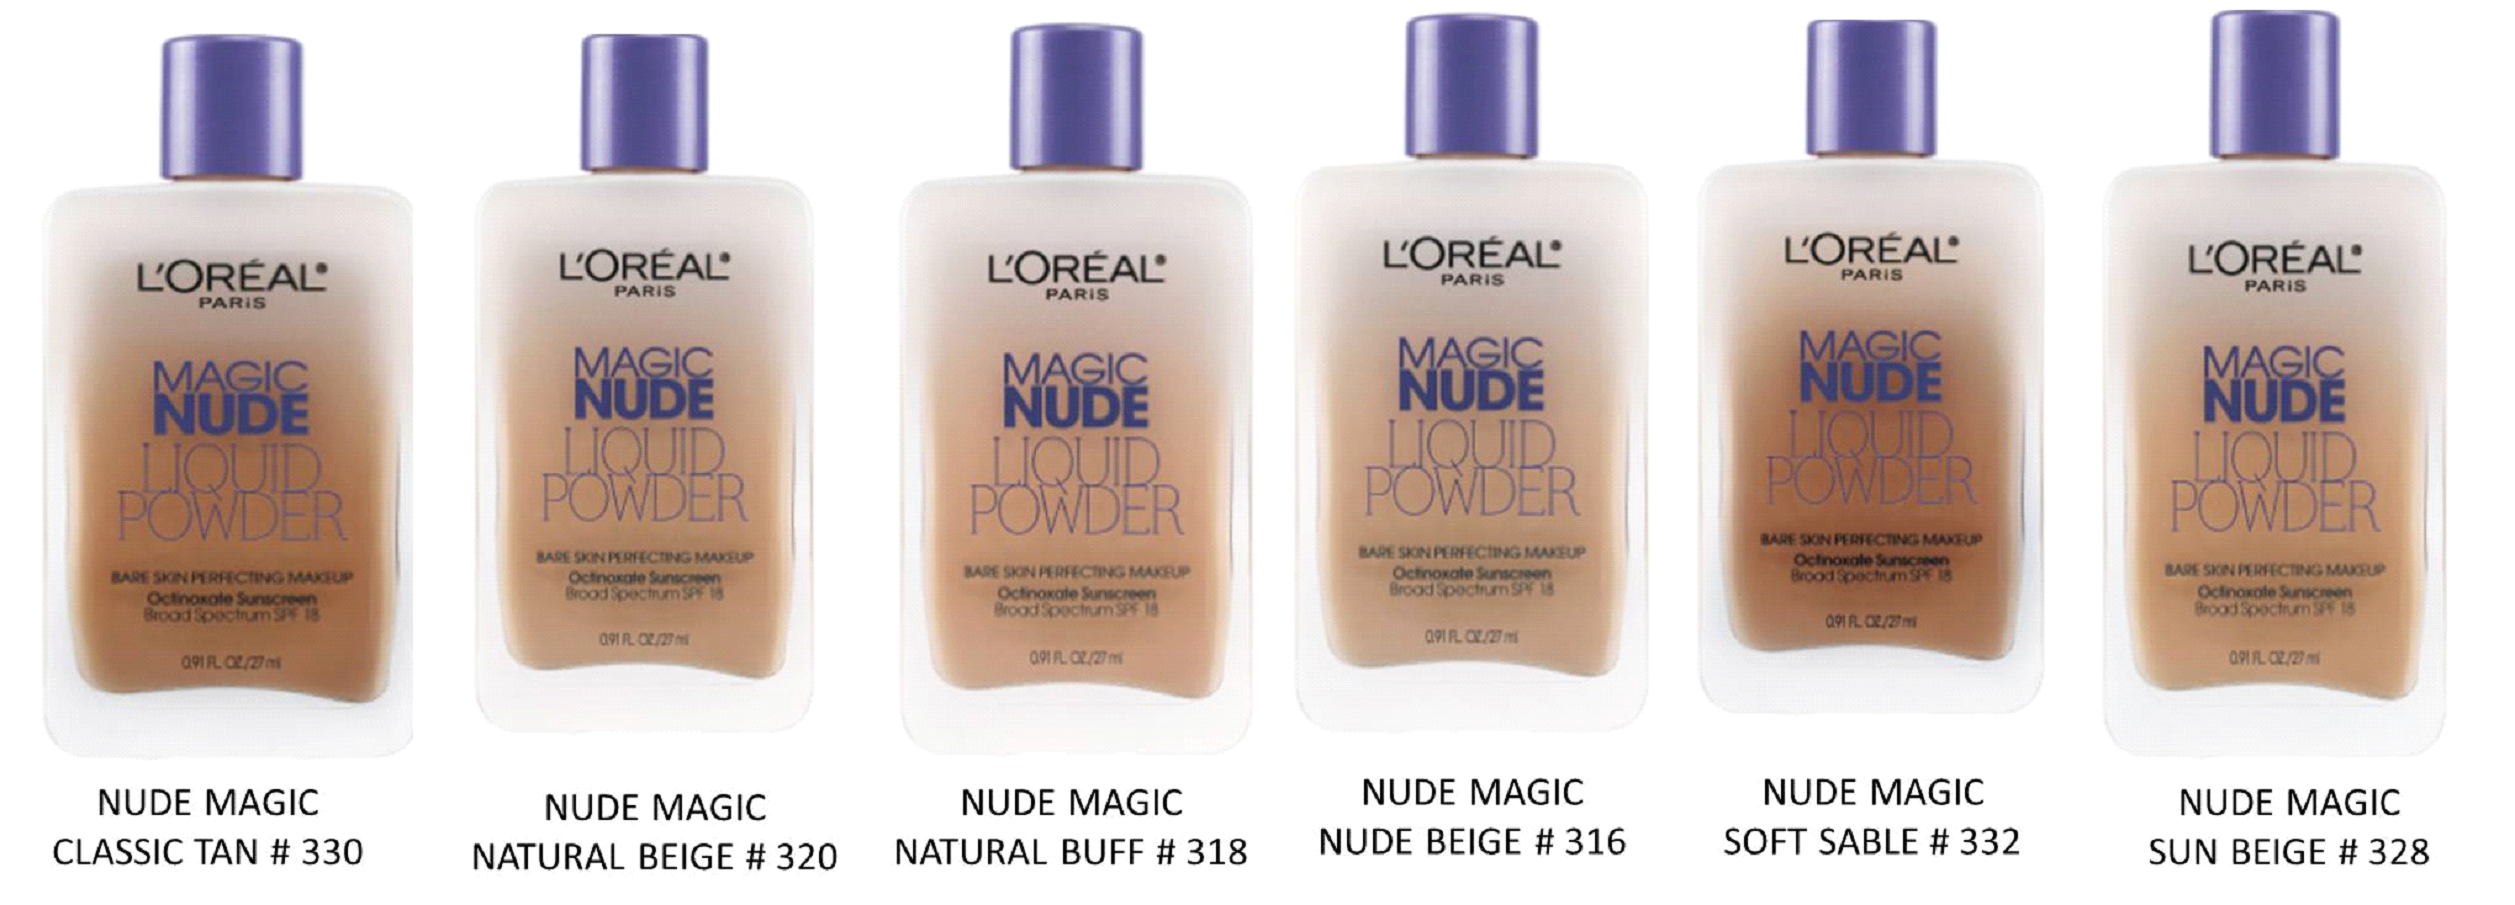 Latest must have cosmetics from L'Oreal - StyleGods